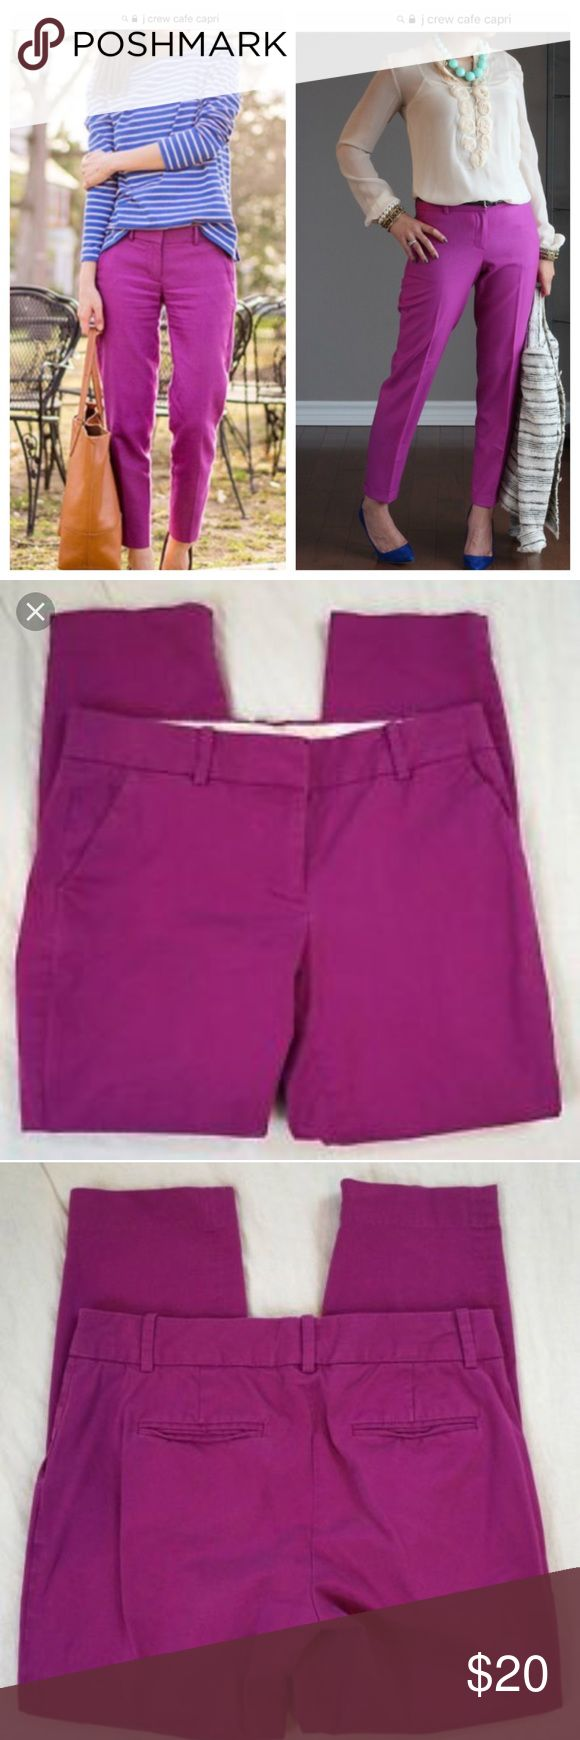 """J.Crew Purple Cafe Capri Pants sz 2 Brand: J. Crew  Color: Purple  Style: Cafe Capri Pants. Broken-in relaxed fit. Flat front with tab closure and diagonal slit pockets. Faux back pockets.  Materials: Cotton & Spandex  Size: 2  Waist: 16"""" Hips: 18"""" Inseam: 25""""  🍍🍍🍍EUC. Bundle & Save with my Other Listings! J. Crew Pants Capris"""